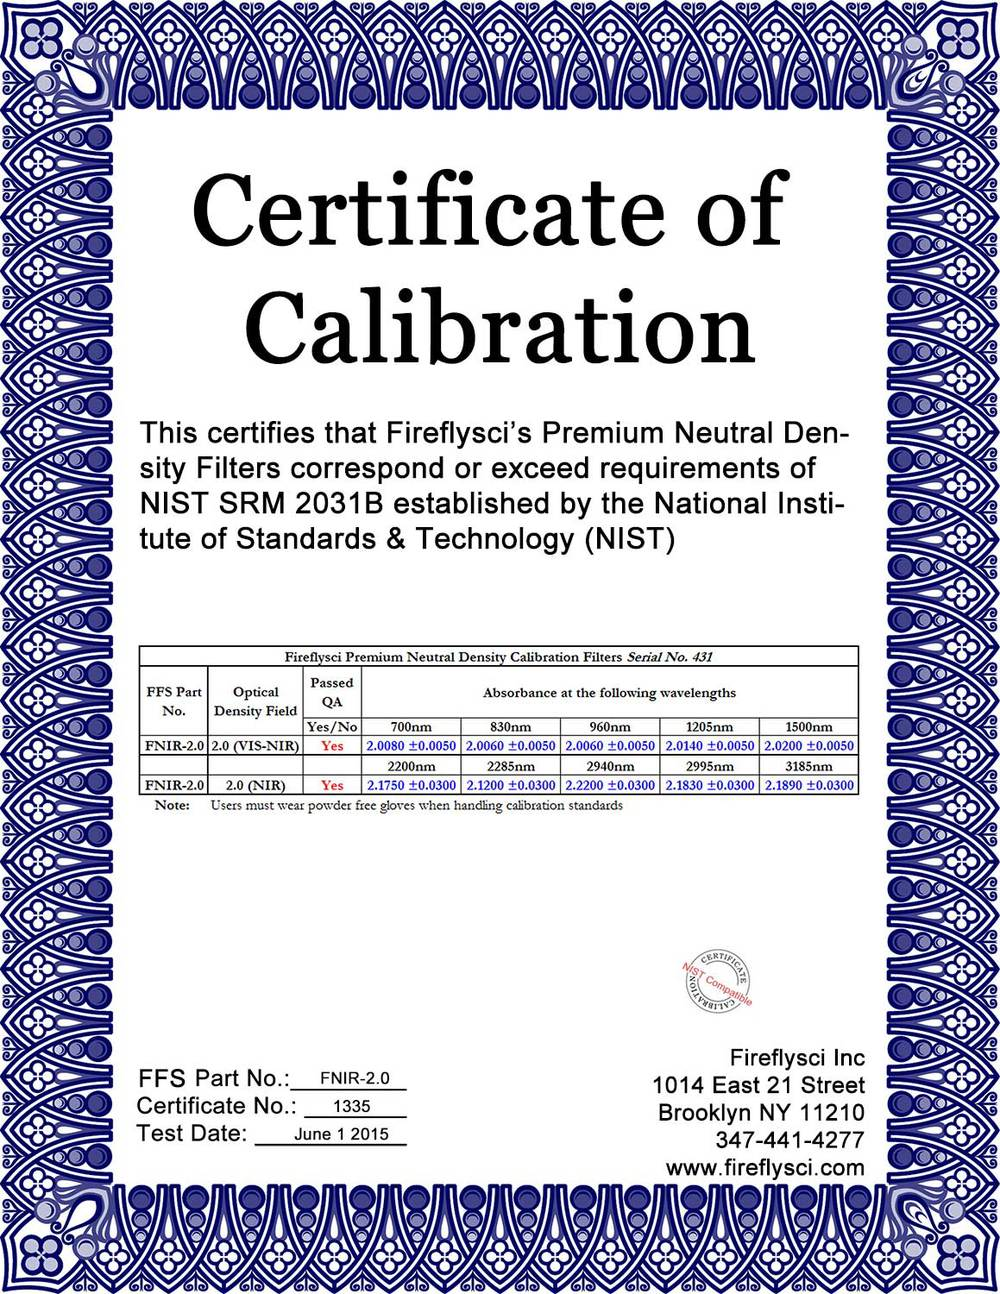 Sample FNIR-2.0 Certificate of Calibration